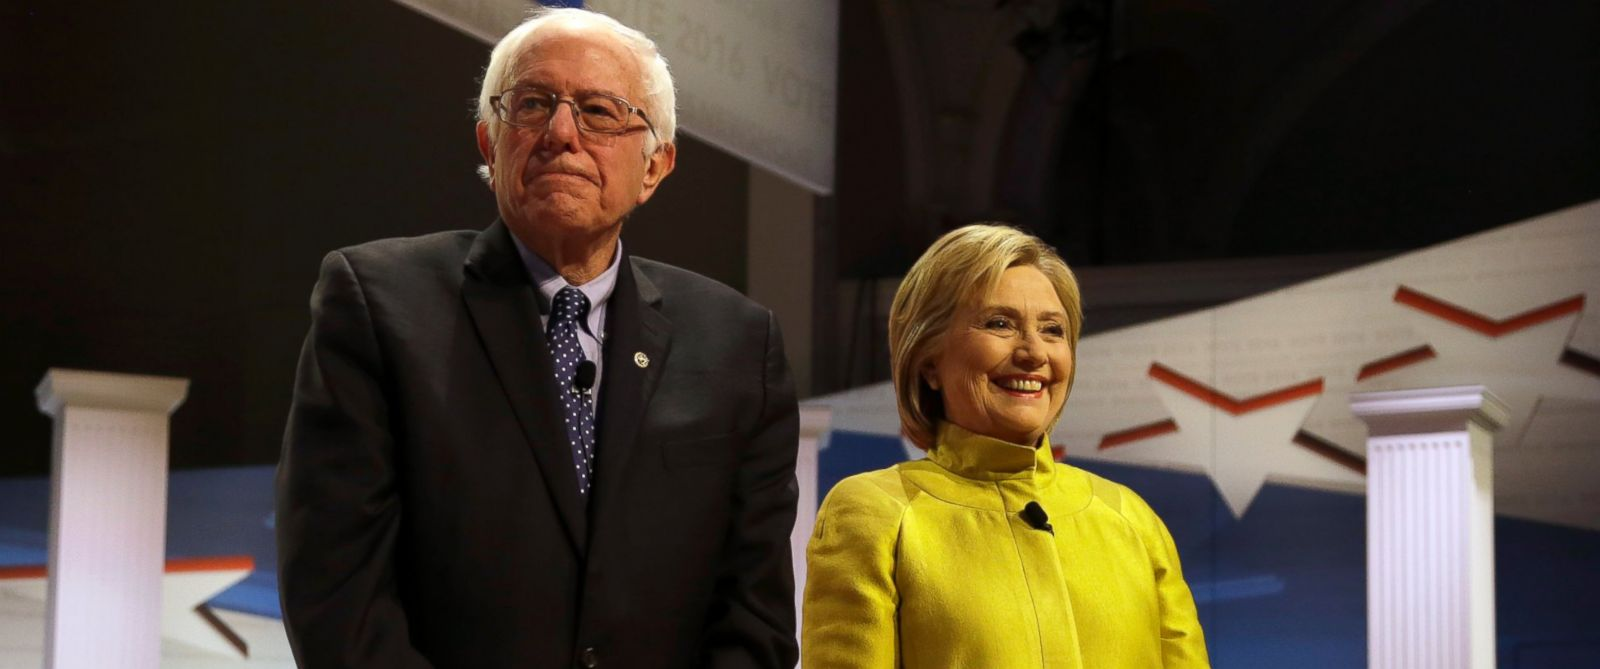 PHOTO: Democratic presidential candidates Sen. Bernie Sanders, left, and Hillary Clinton take the stage before a Democratic presidential primary debate at the University of Wisconsin-Milwaukee, Feb. 11, 2016, in Milwaukee.